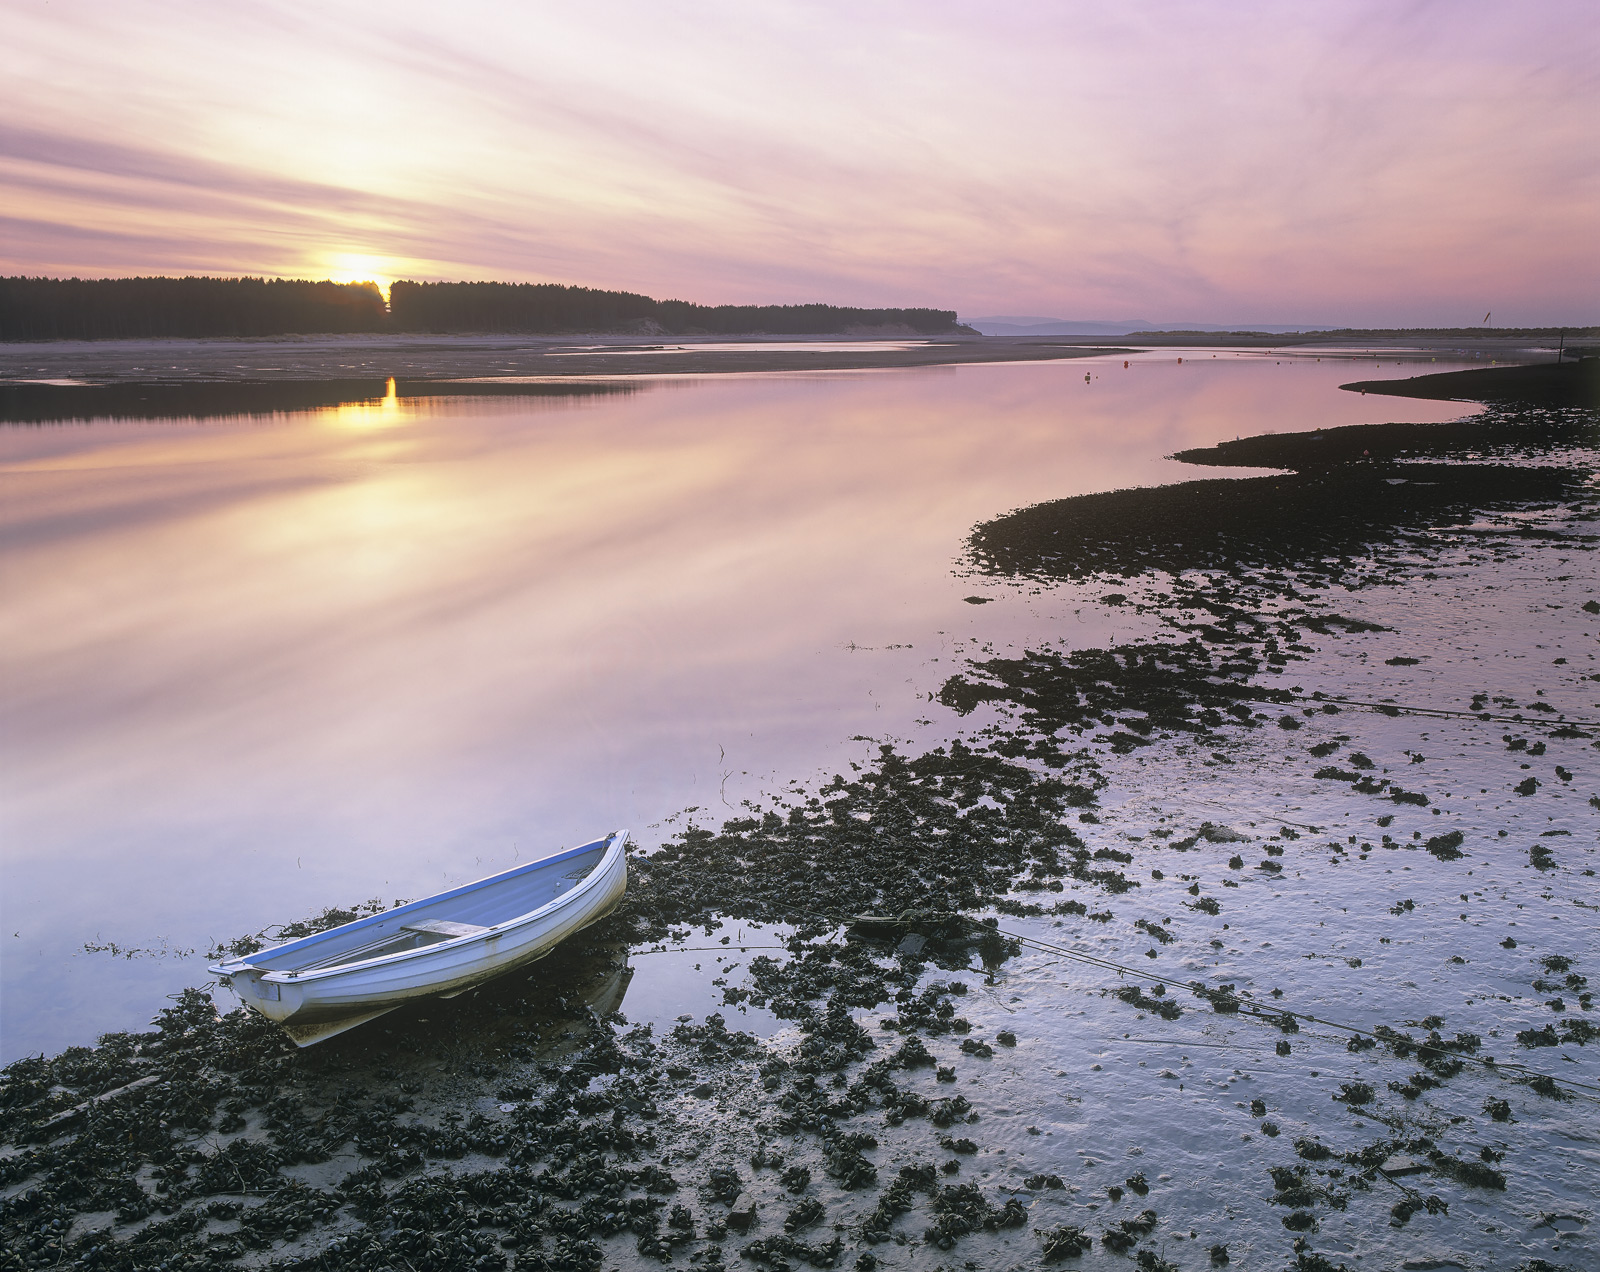 A beautiful soft misty pink summer sky hung over the Findhorn estuary at sunset whilst below a powder blue painted boat was waiting...